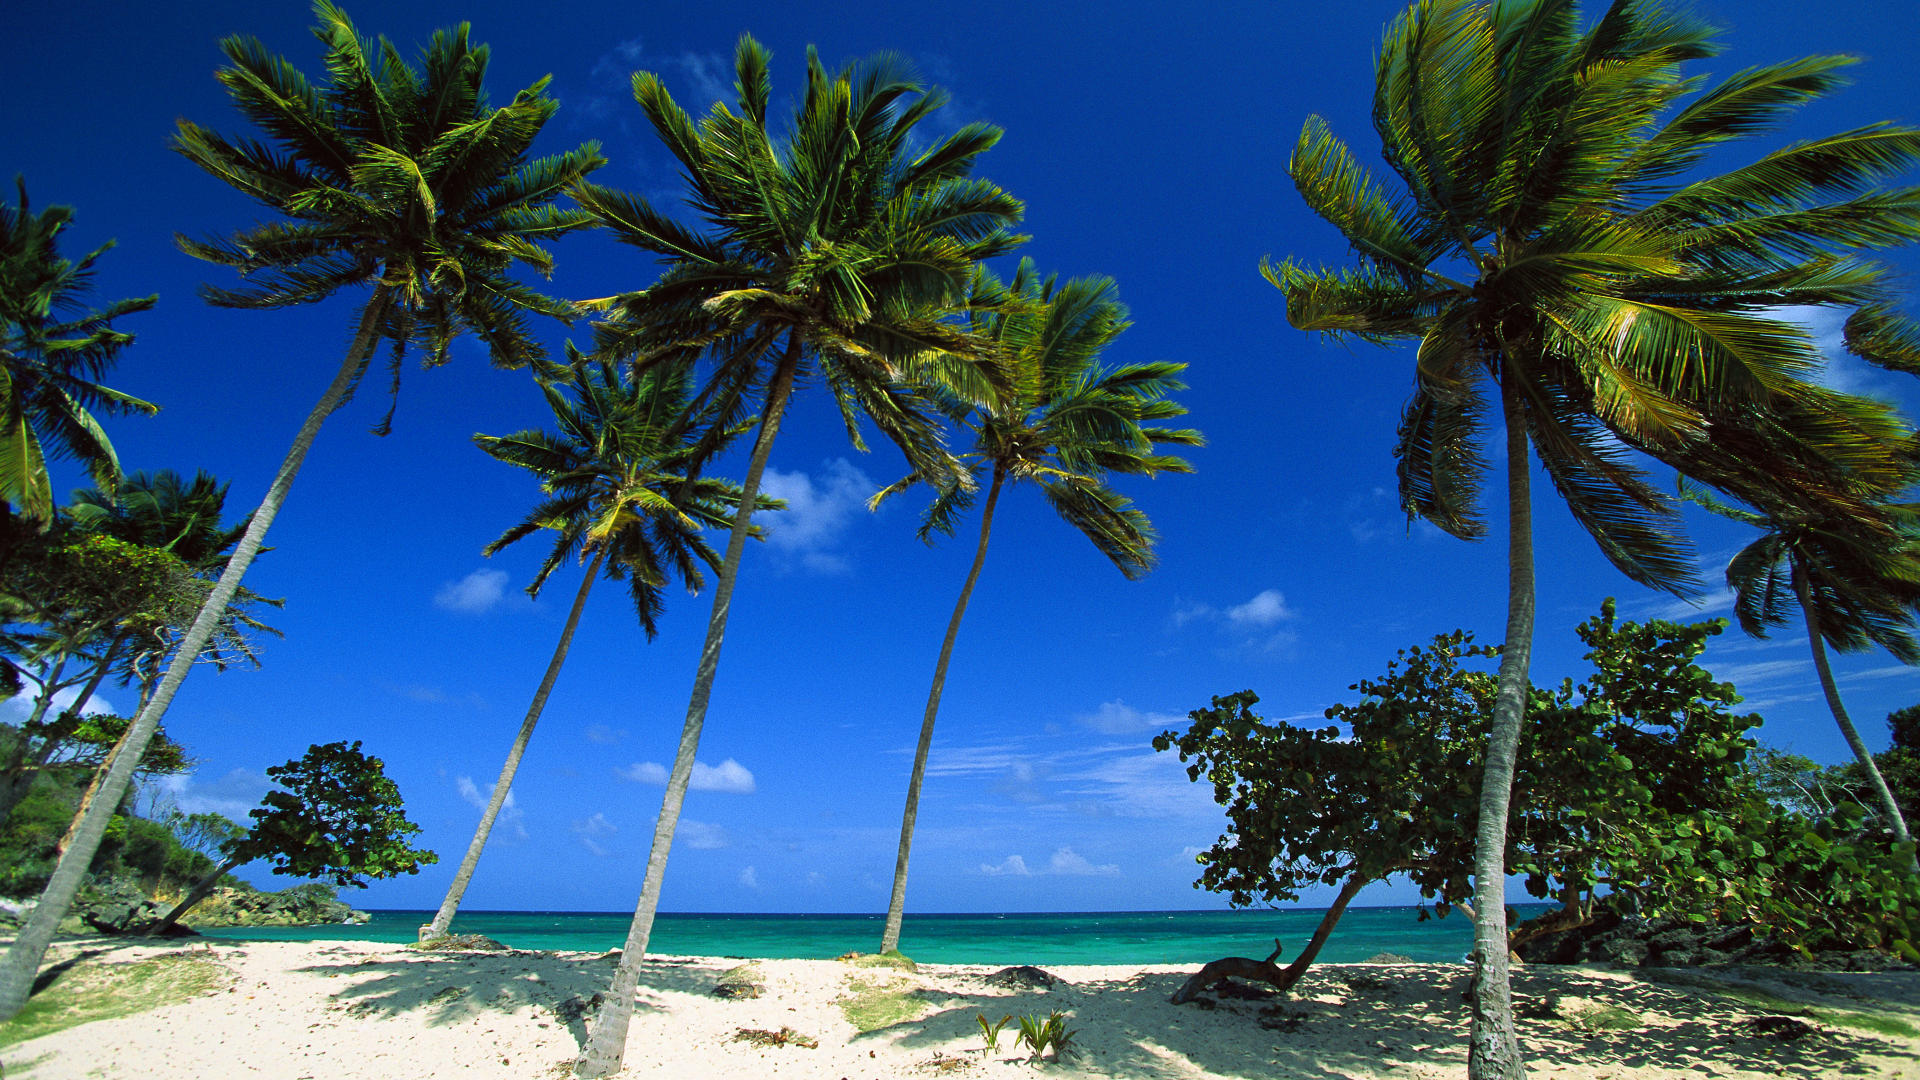 Dominican wallpapers wallpapersafari - Dominican republic wallpaper ...